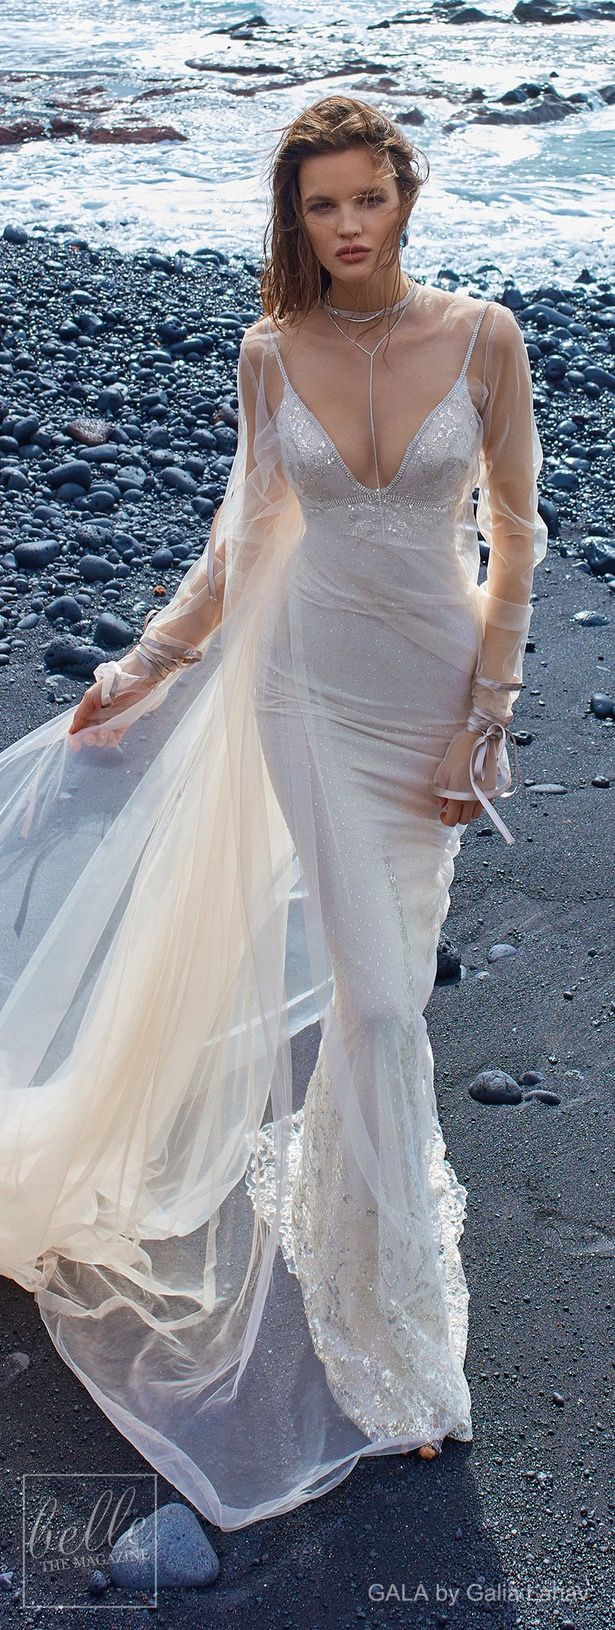 Gala by galia lahav wedding dress collection no in wed